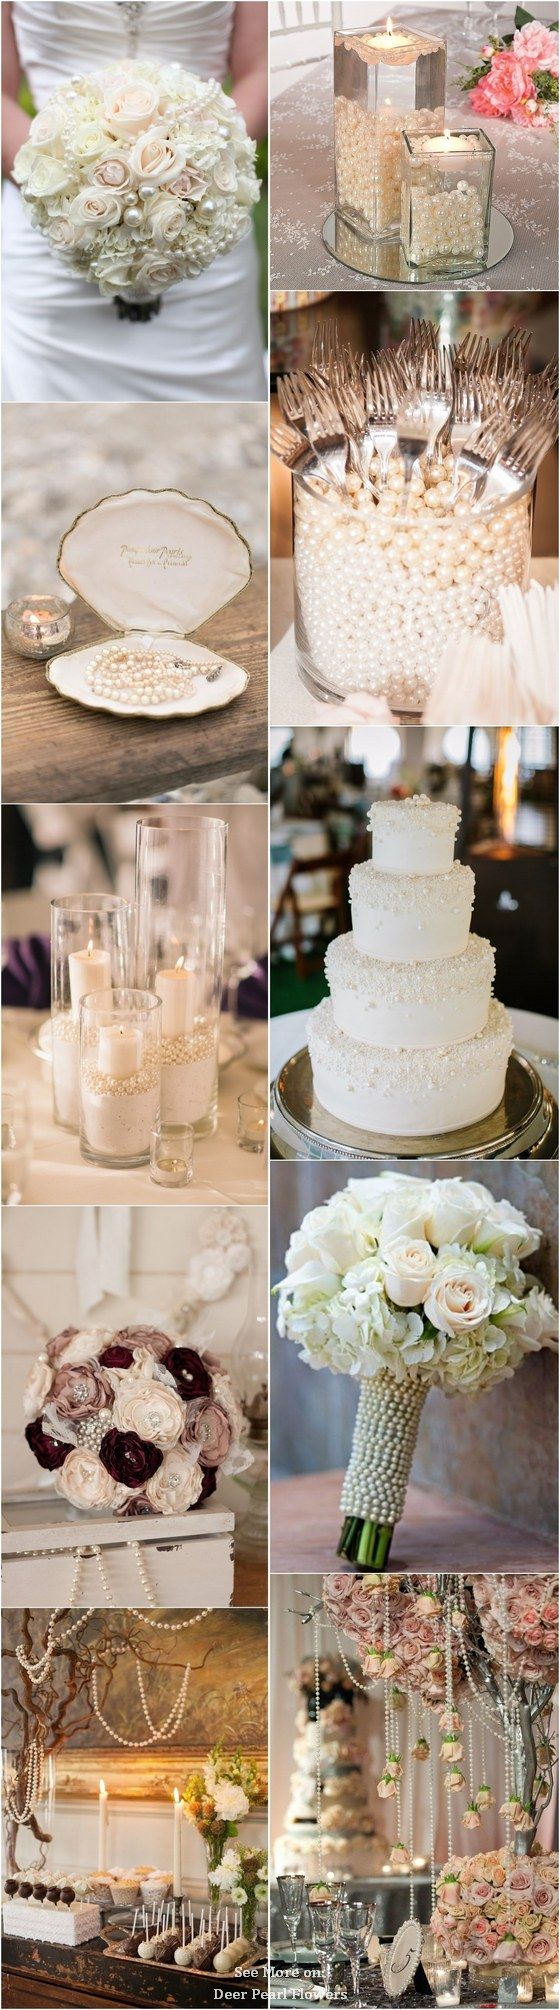 Rent ostrich feather centerpieces wedding amp party centerpiece rentals - 35 Chic Vintage Pearl Wedding Ideas You Ll Love